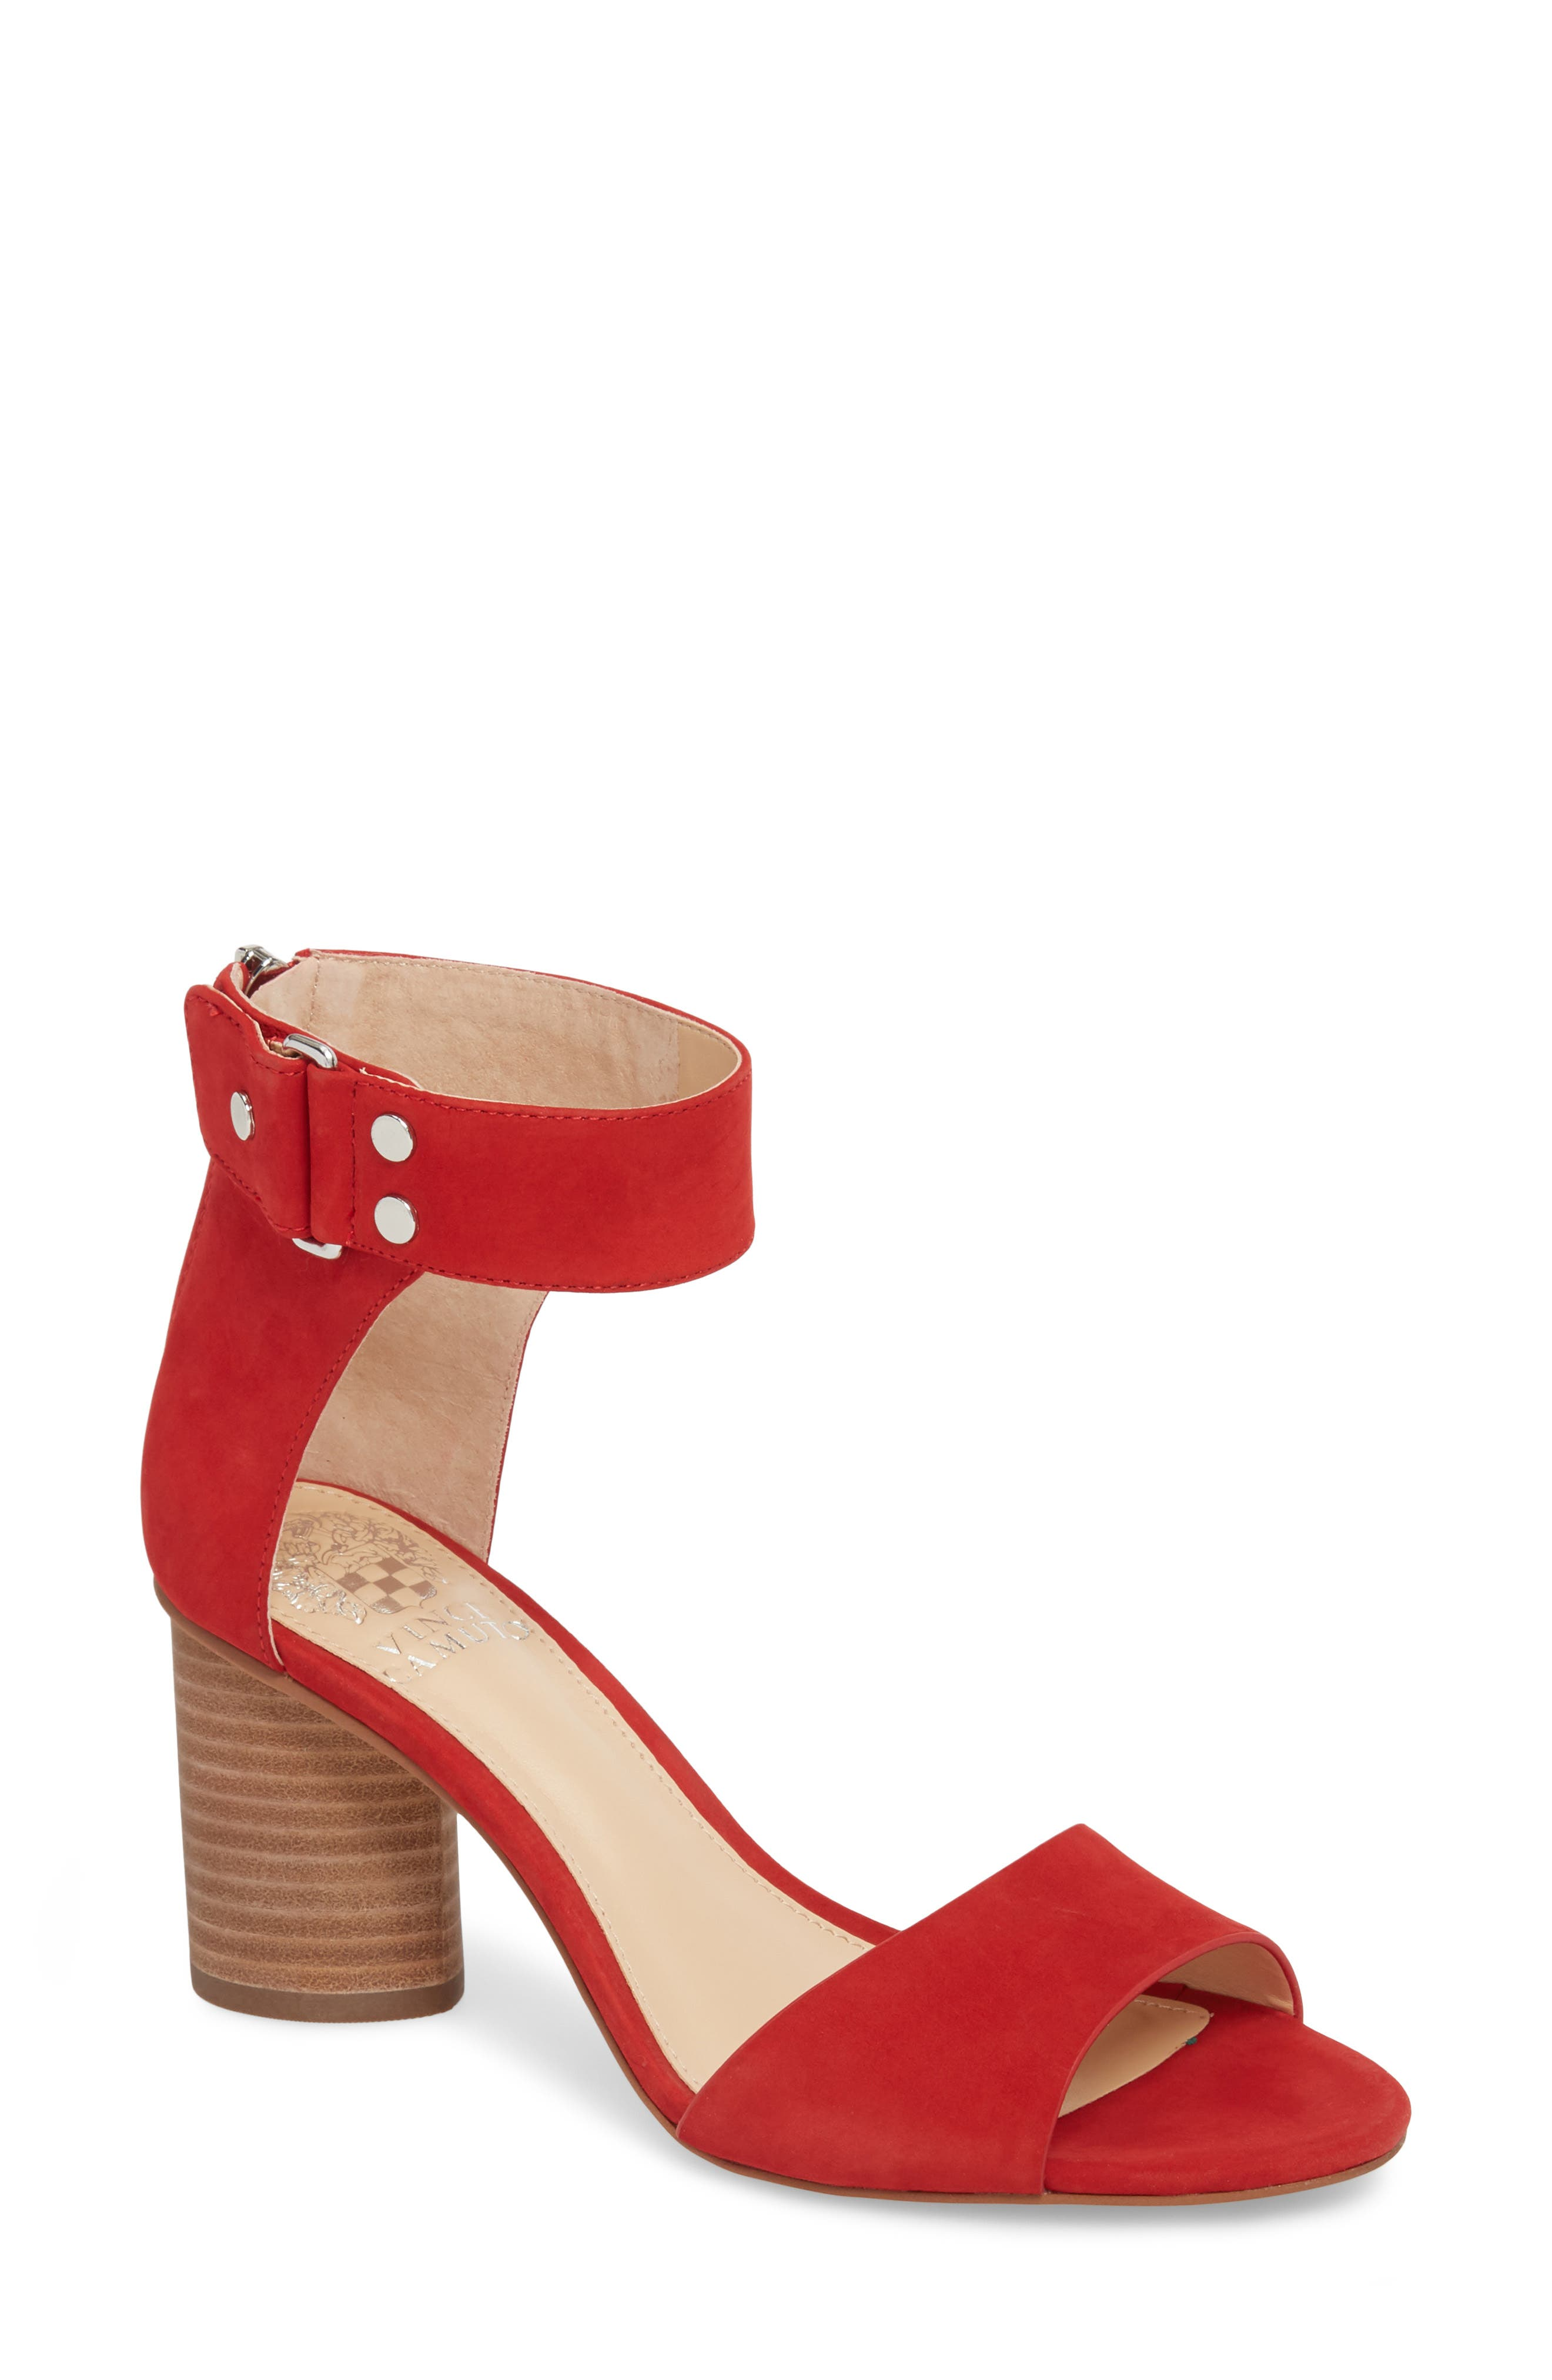 Jannali Ankle Strap Sandal,                             Main thumbnail 1, color,                             Cherry Red Leather